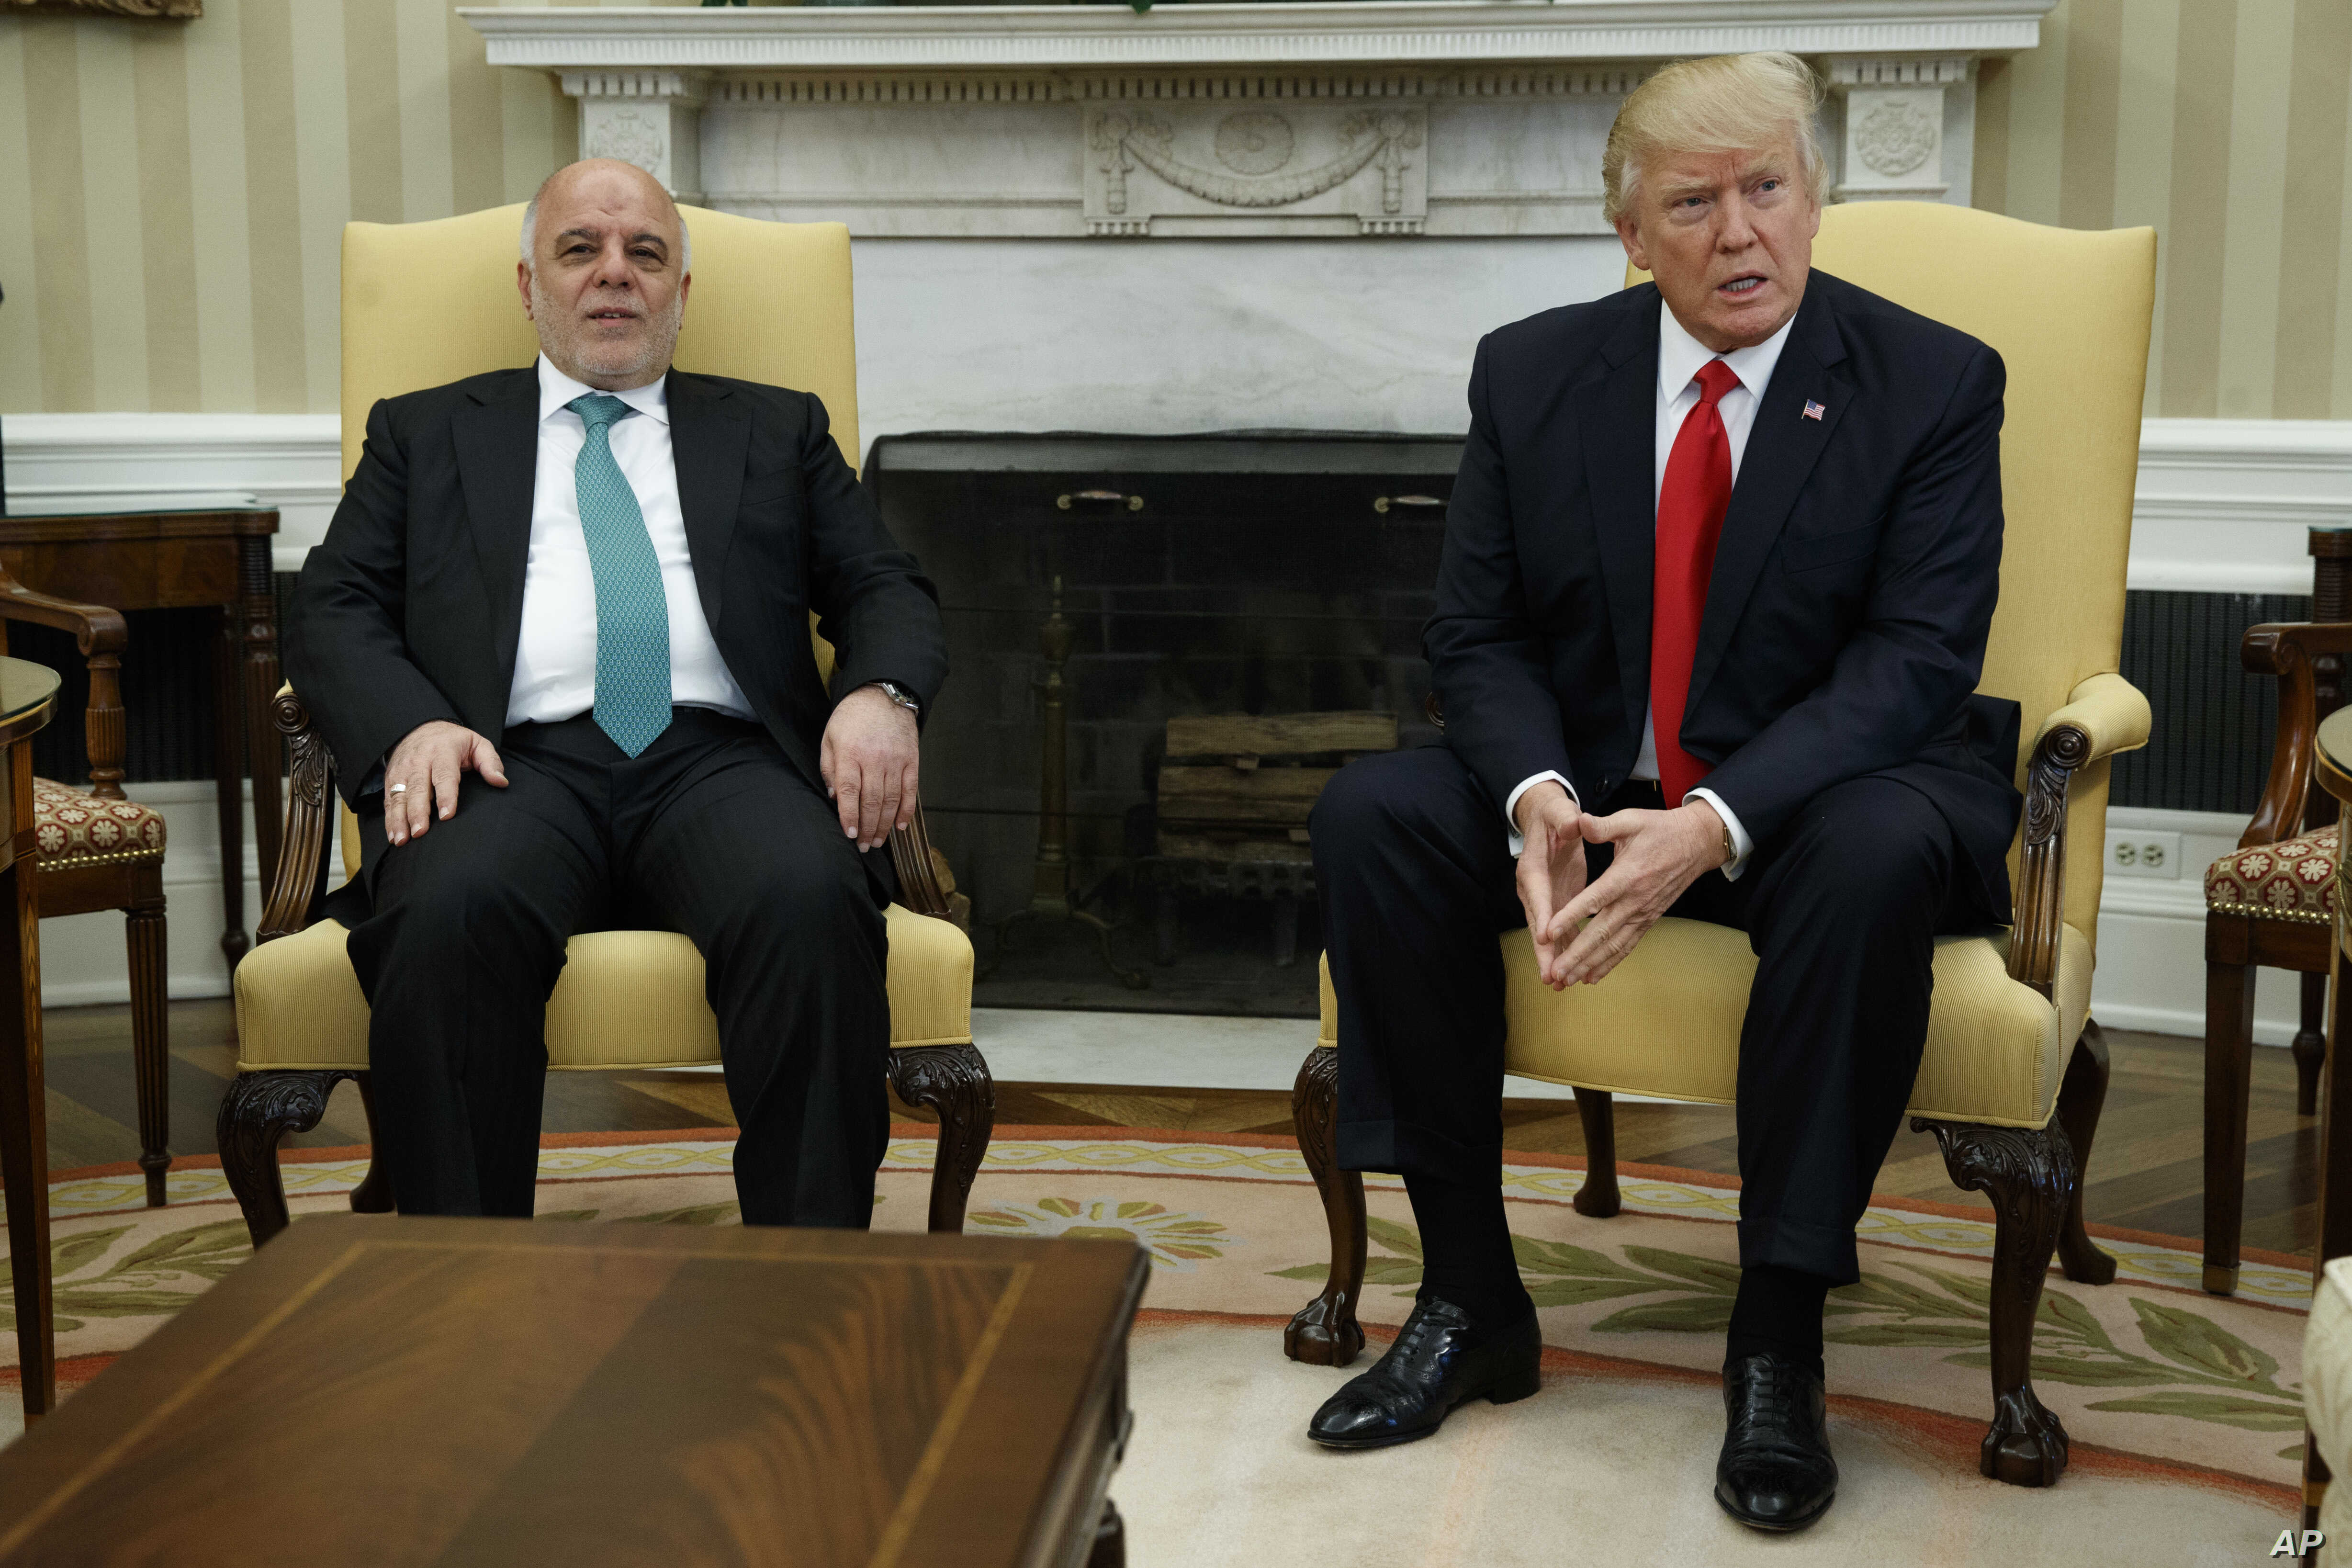 President Donald Trump meets with Iraqi Prime Minister Haider al-Abadi in the Oval Office of the White House in Washington, March 20, 2017.